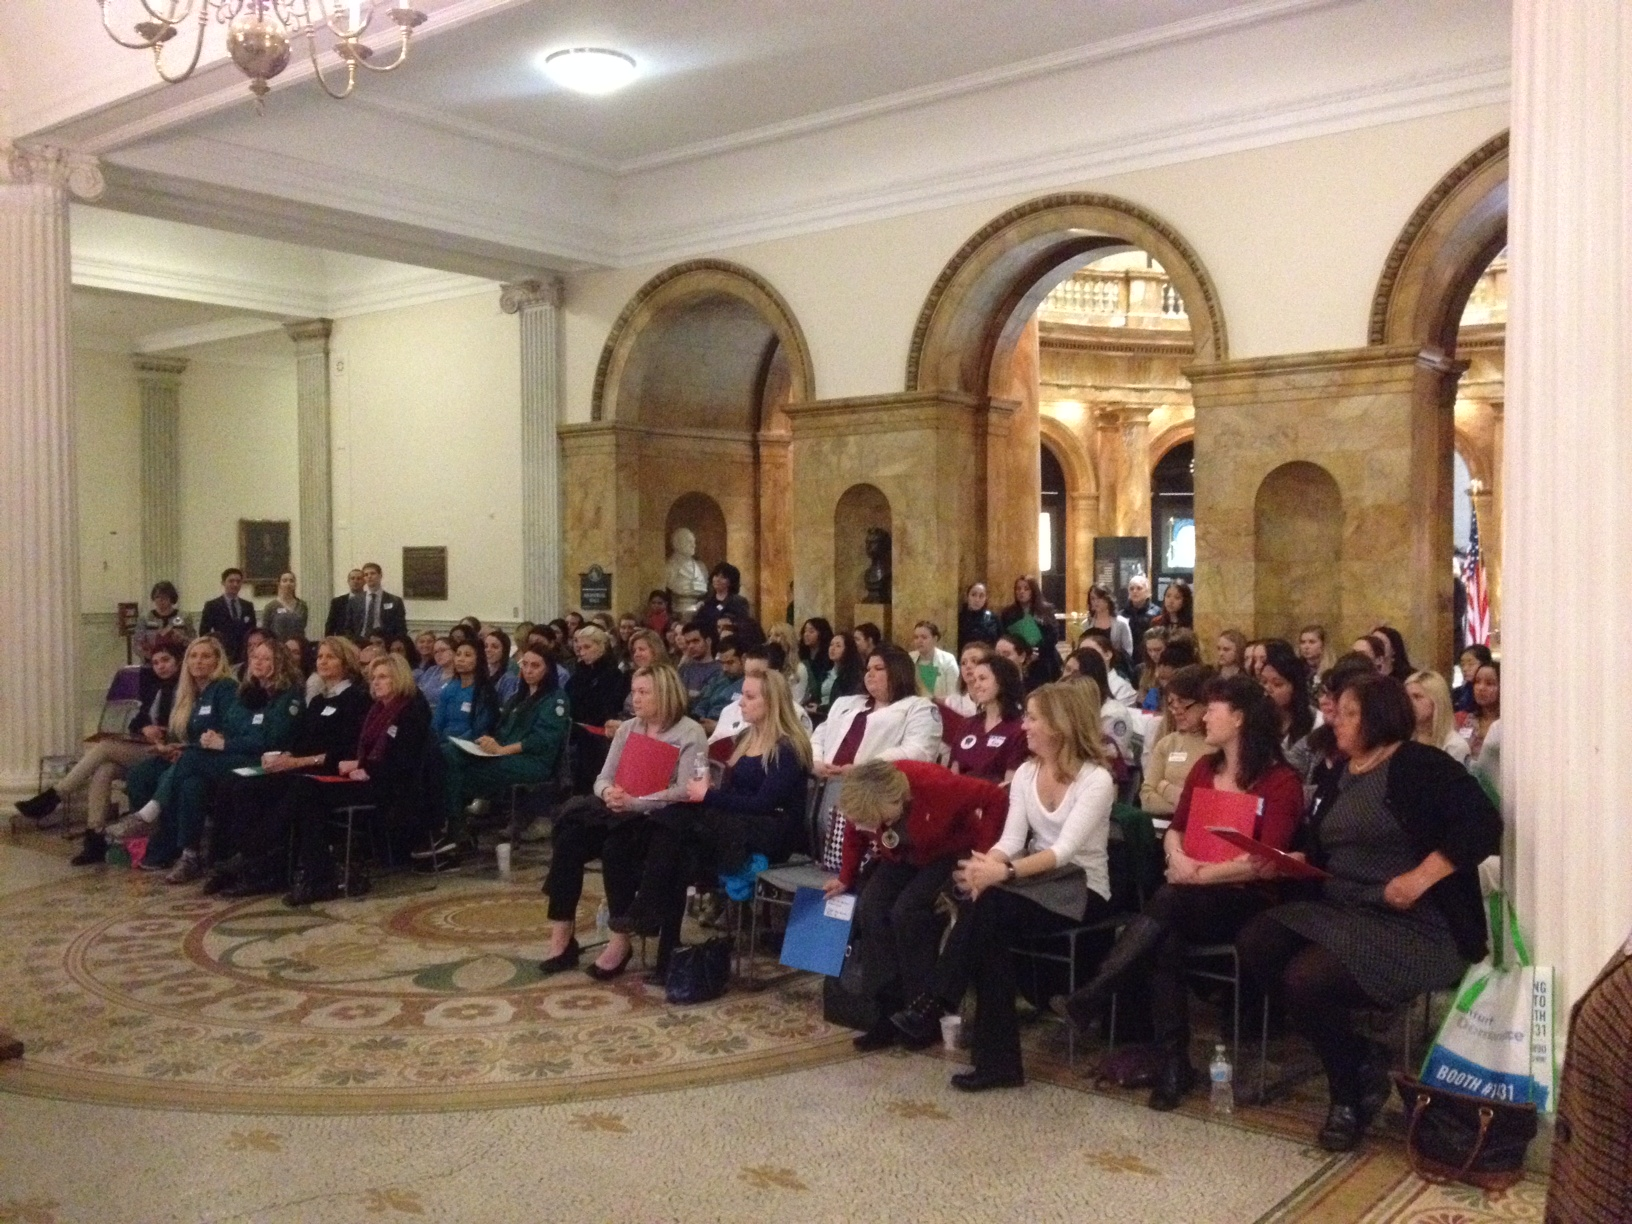 Dental hygiene students from across Massachusetts at Dental Hygiene Day on Beacon Hill